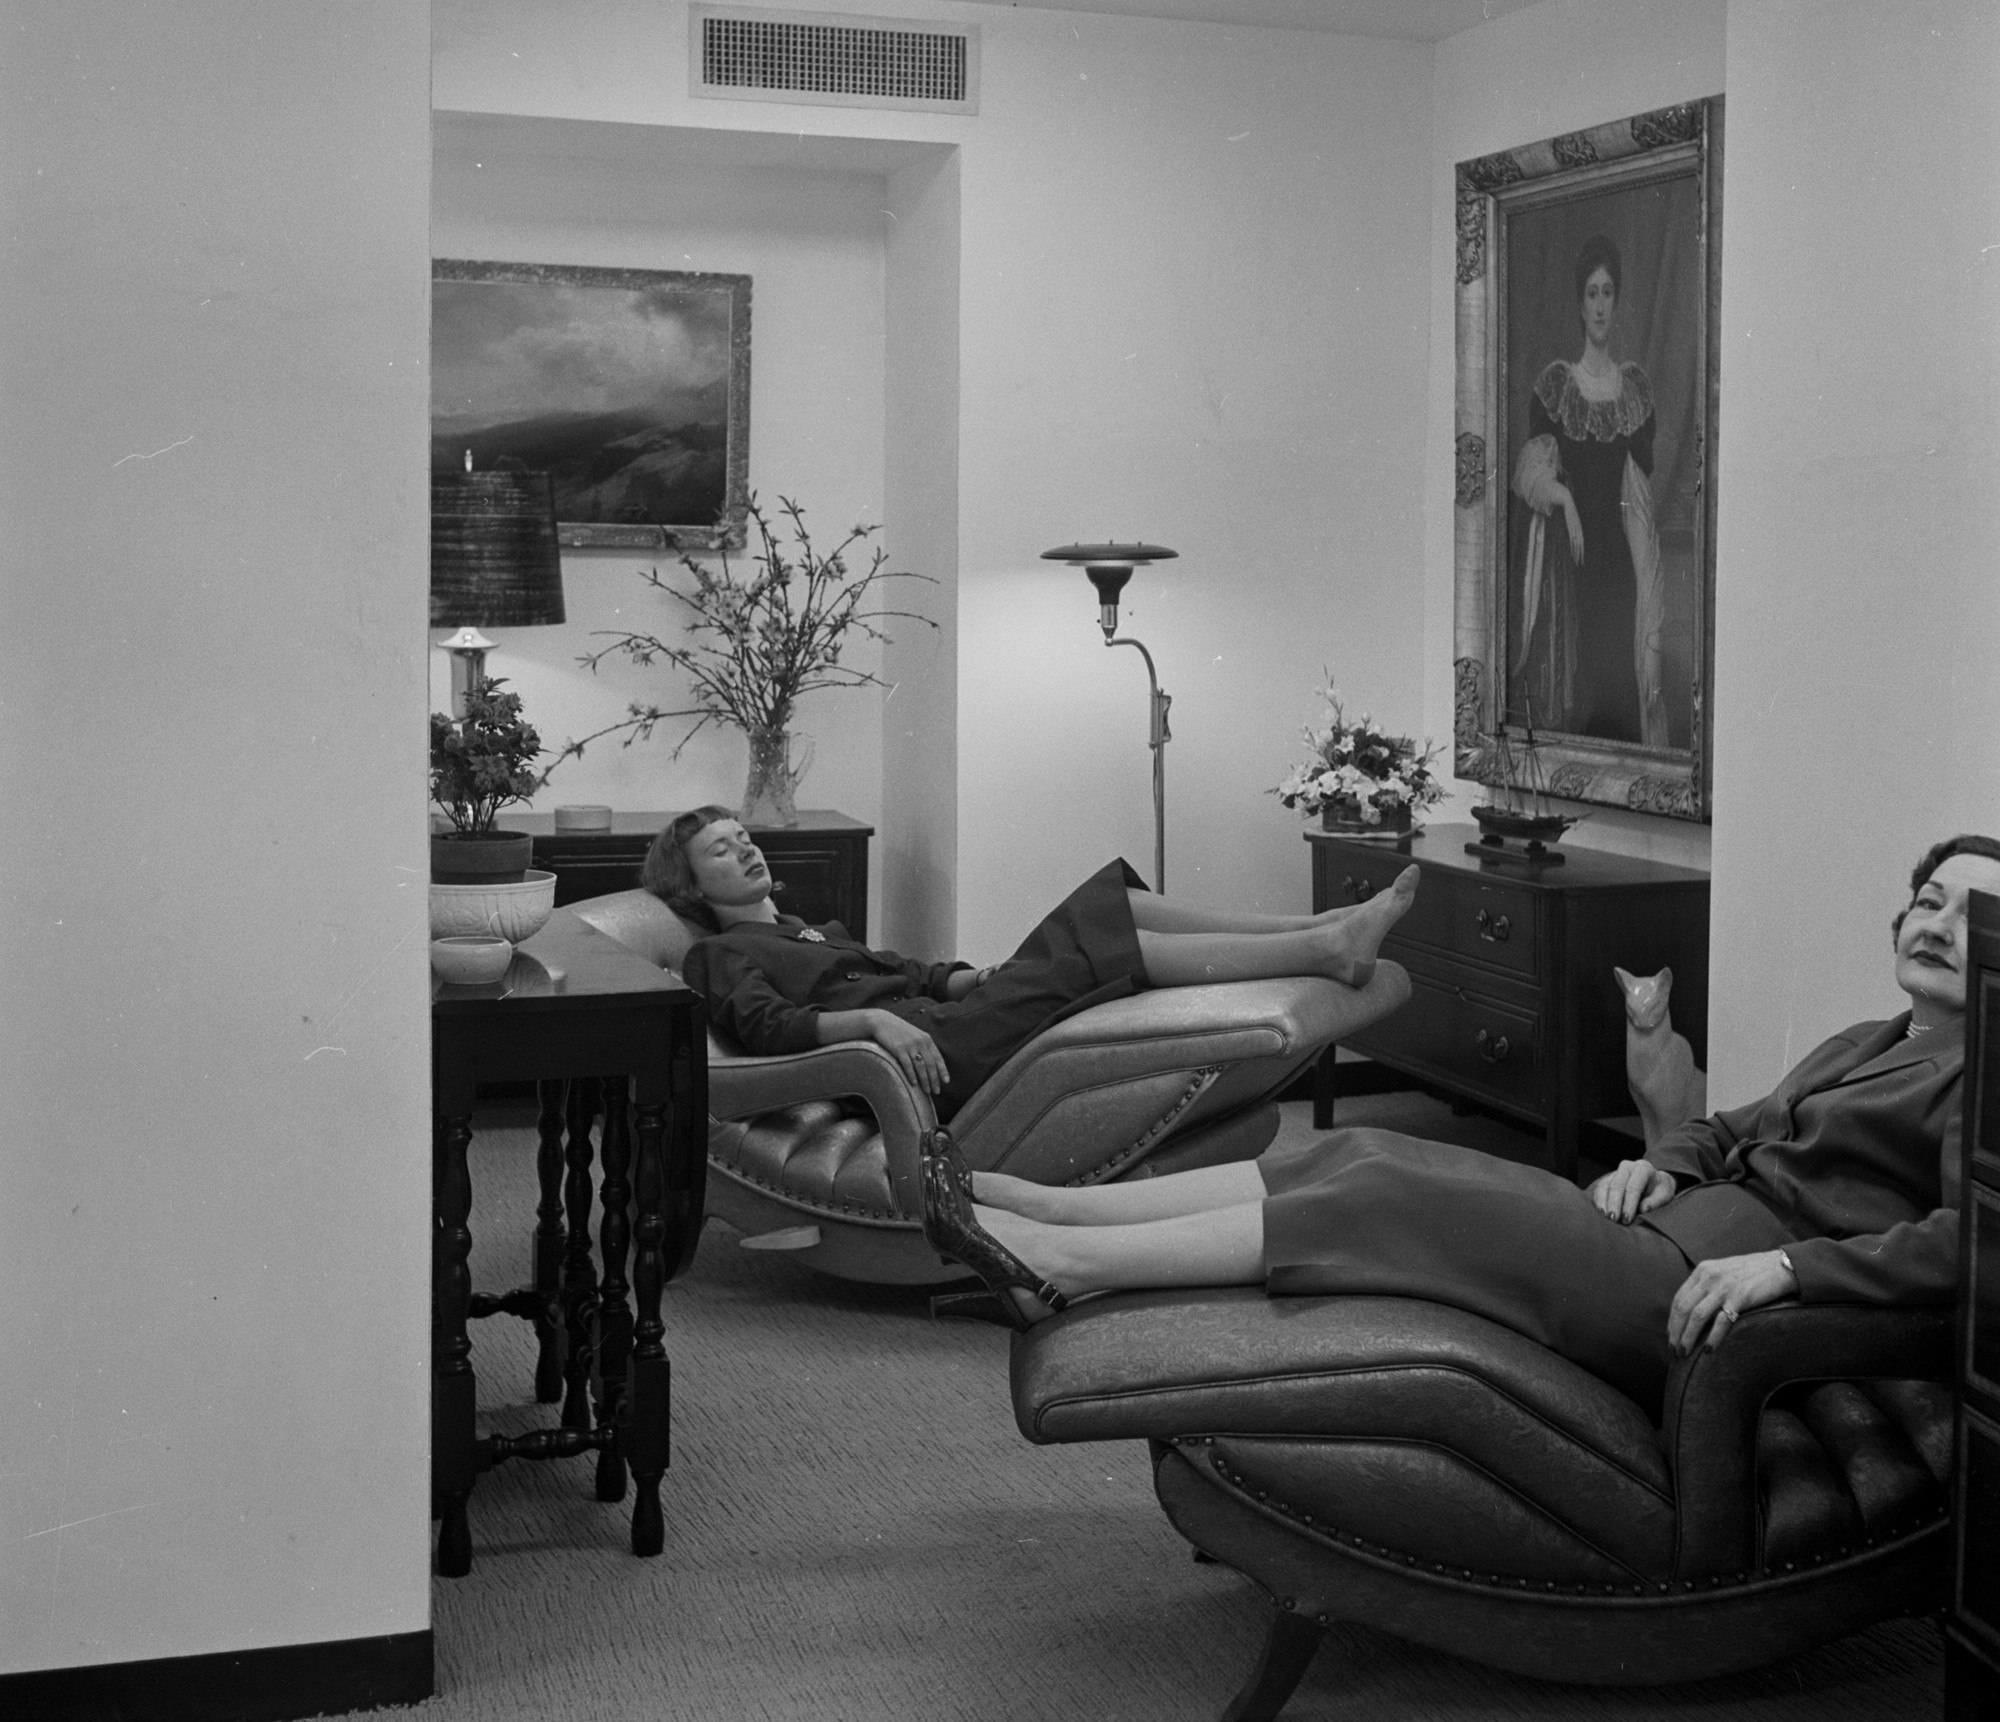 Two members of the Pamper Club—a Manhattan salon and social club catering to working girls and suburban housewives—resting on contour chairs in 1952.